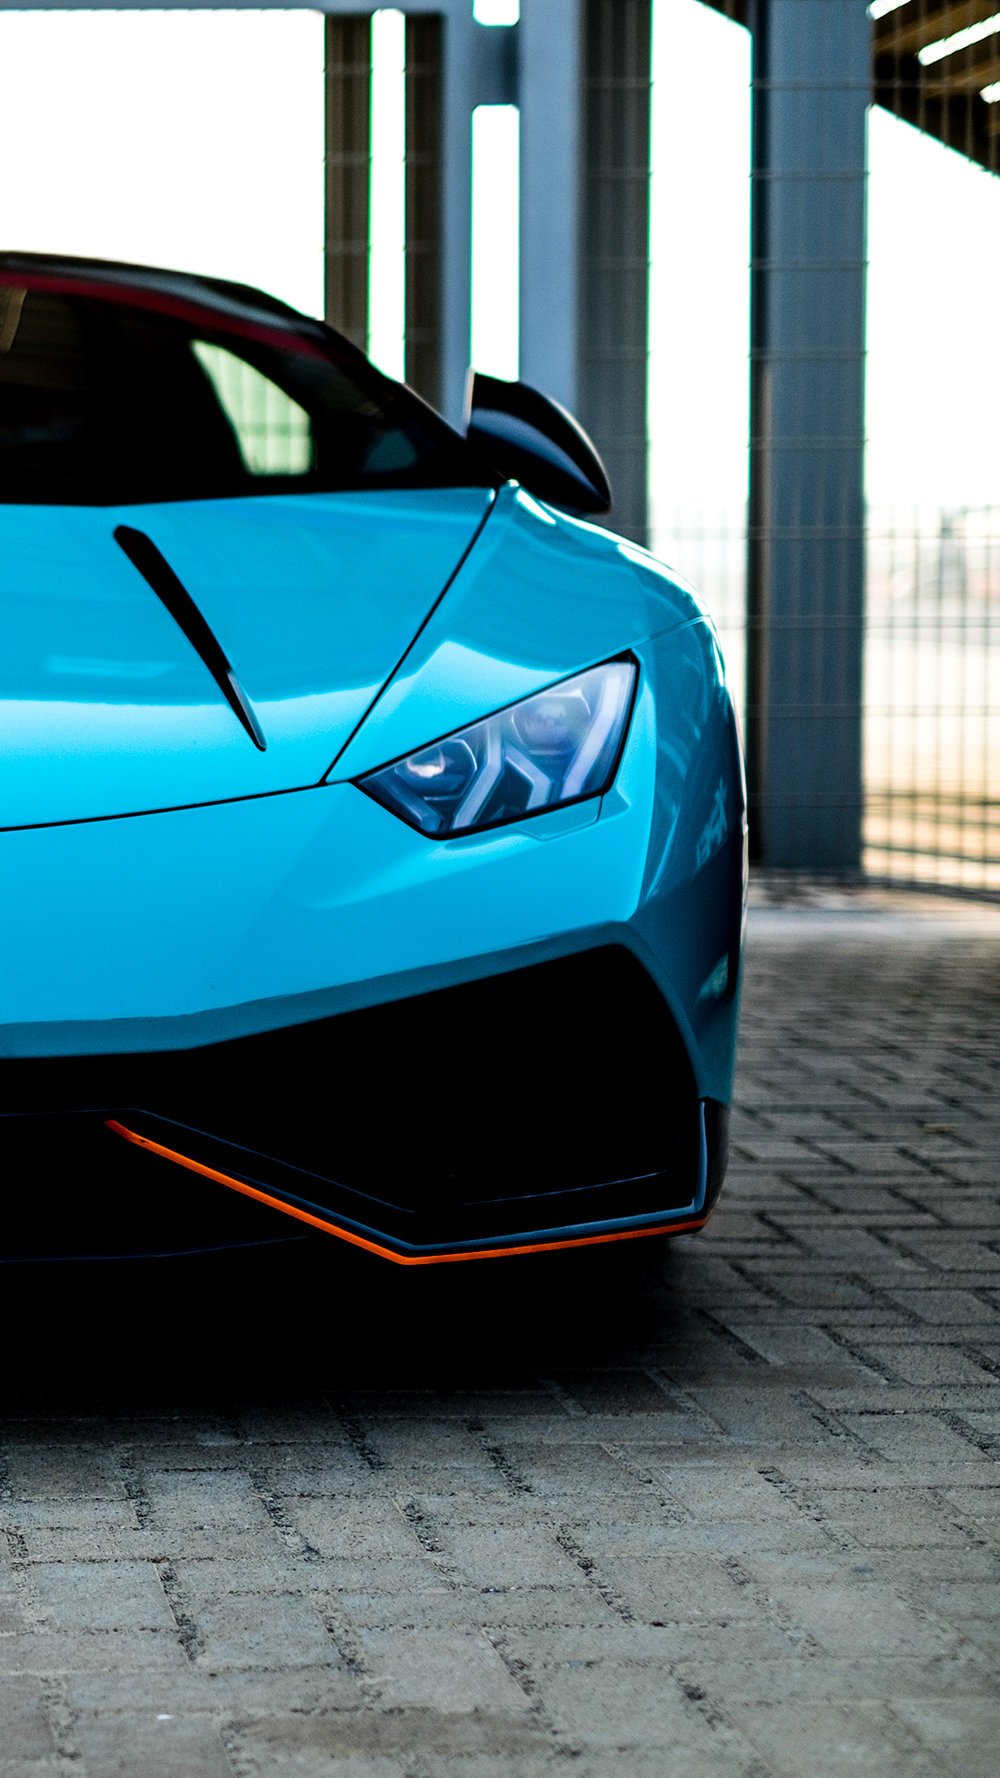 wallpaper-lambo2-new.jpg